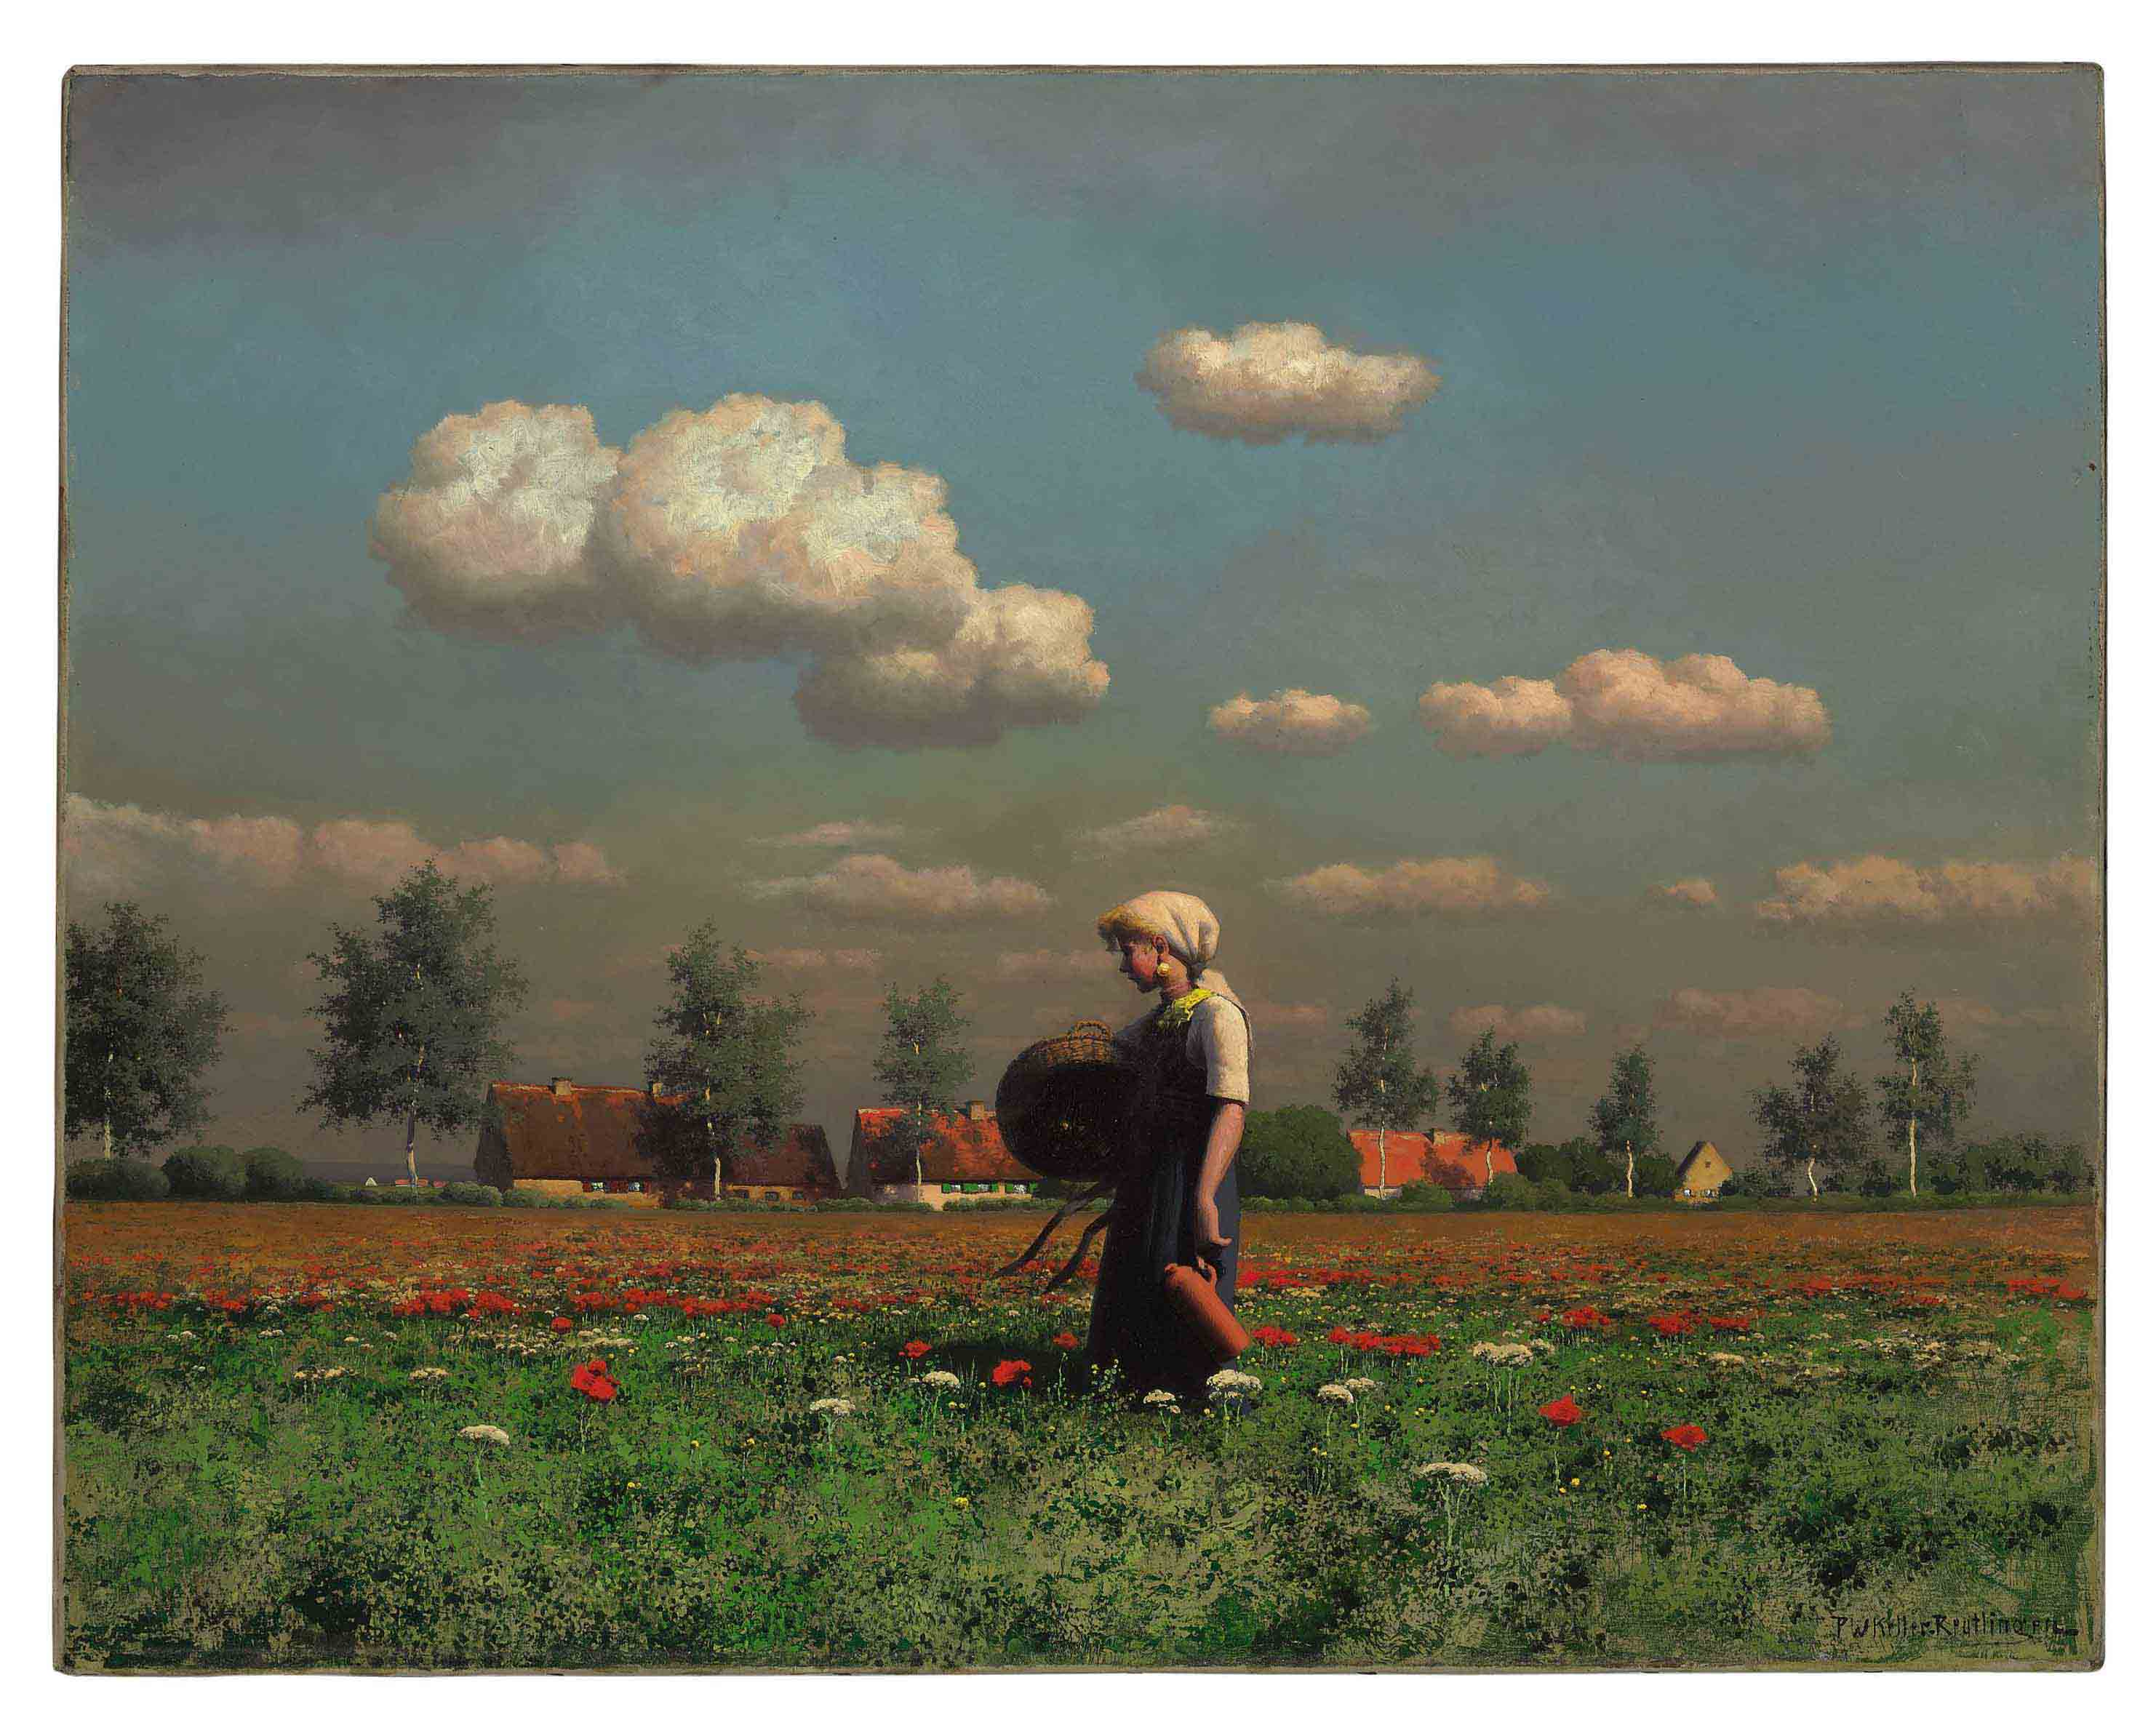 A Girl in a Field of Poppies